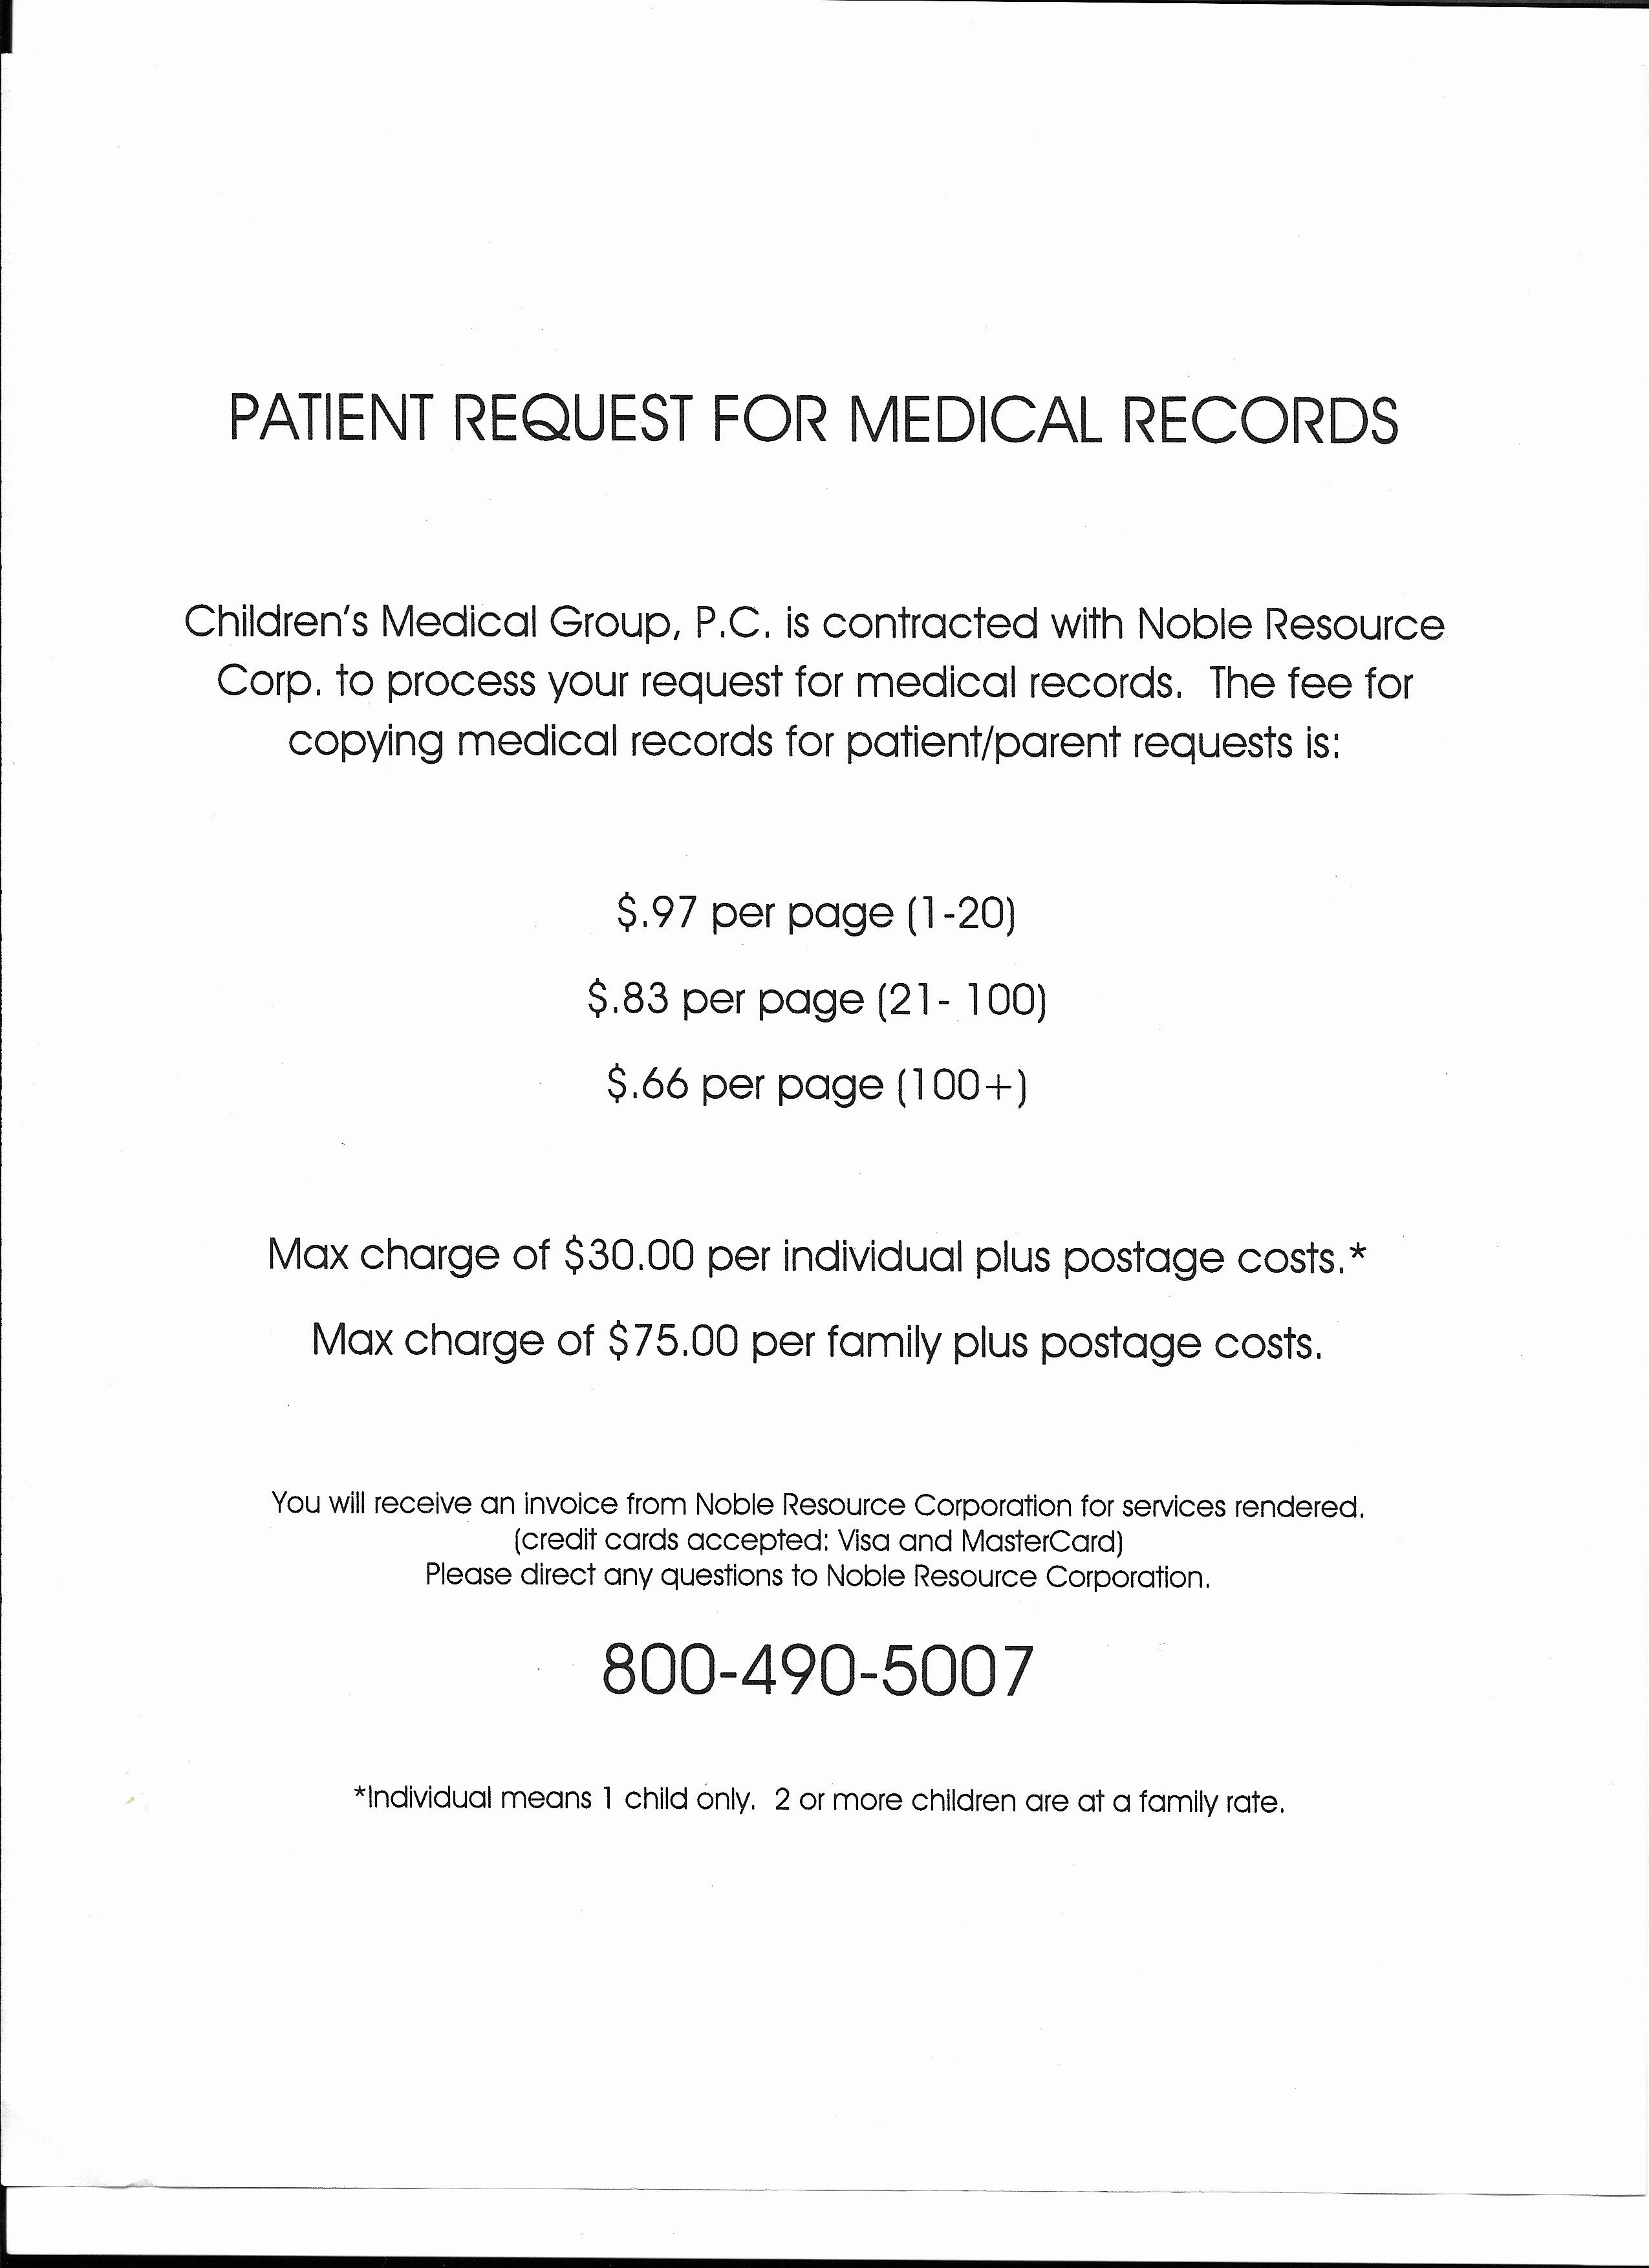 Medical Records Request Form Template Fresh Form Free Printable Medical Records Request Form Medical Medical Records Invoice Template Medical